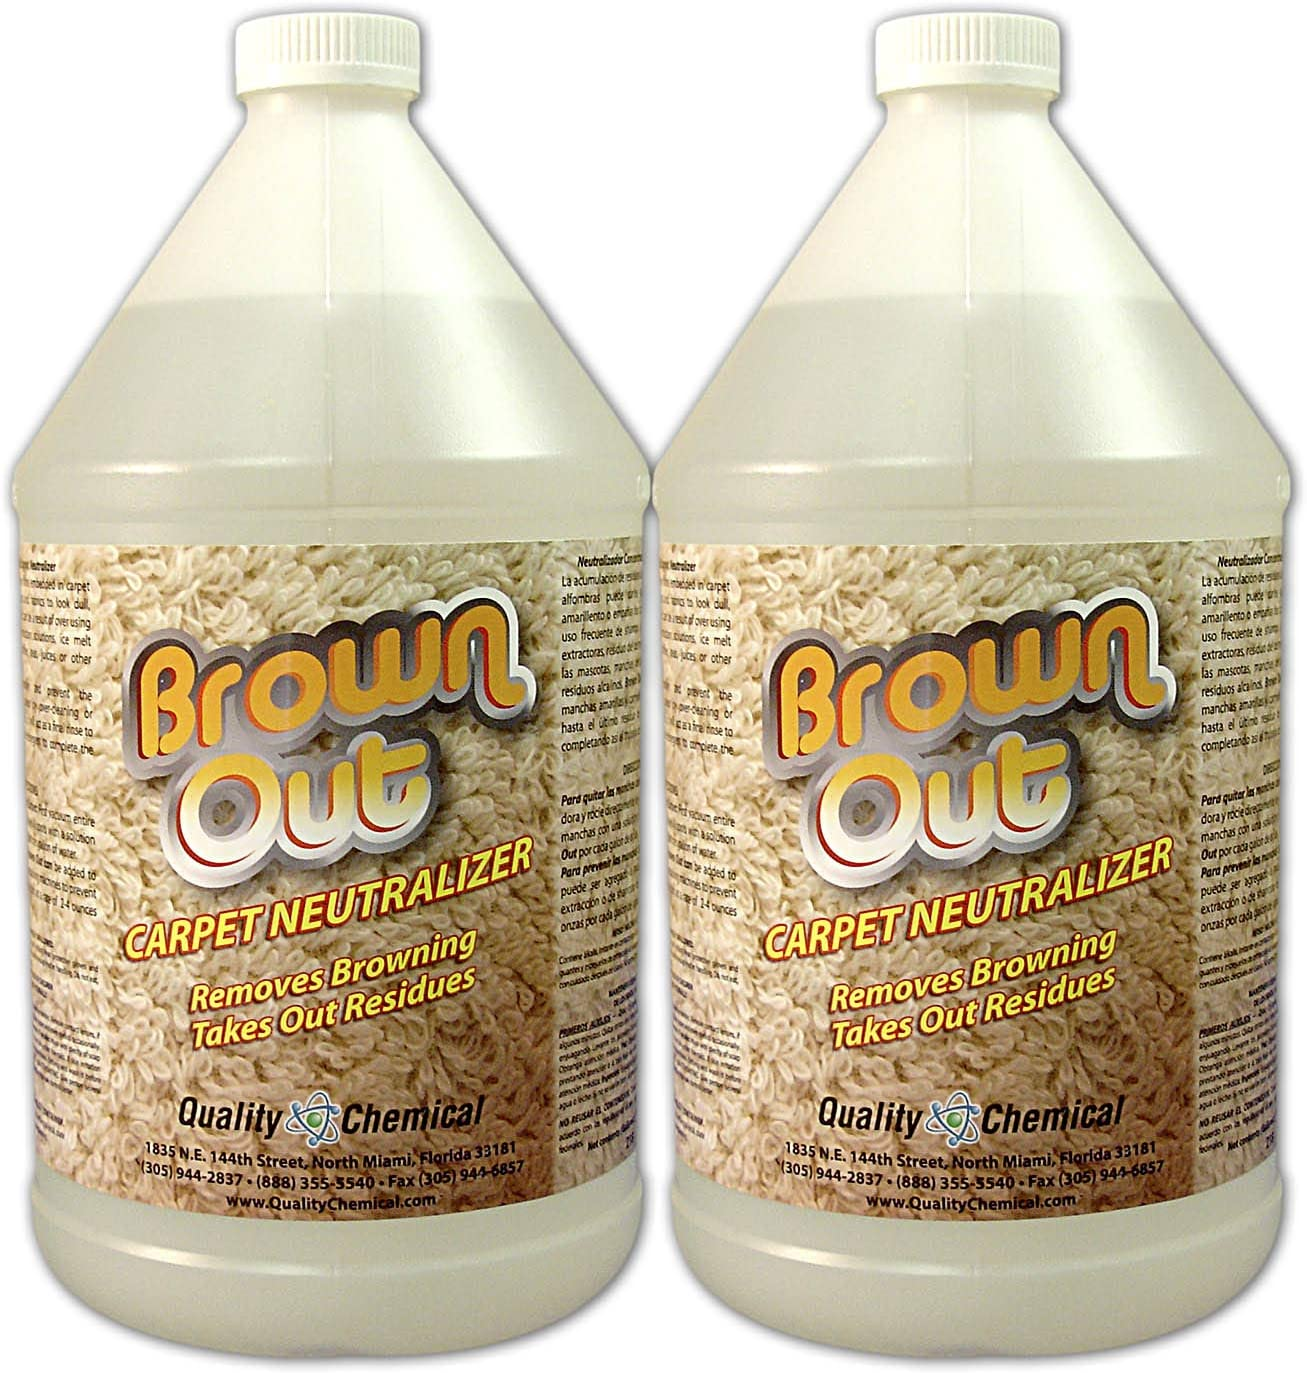 Brown Out Carpet Neutralizer and Stain Remover-2 gallon case